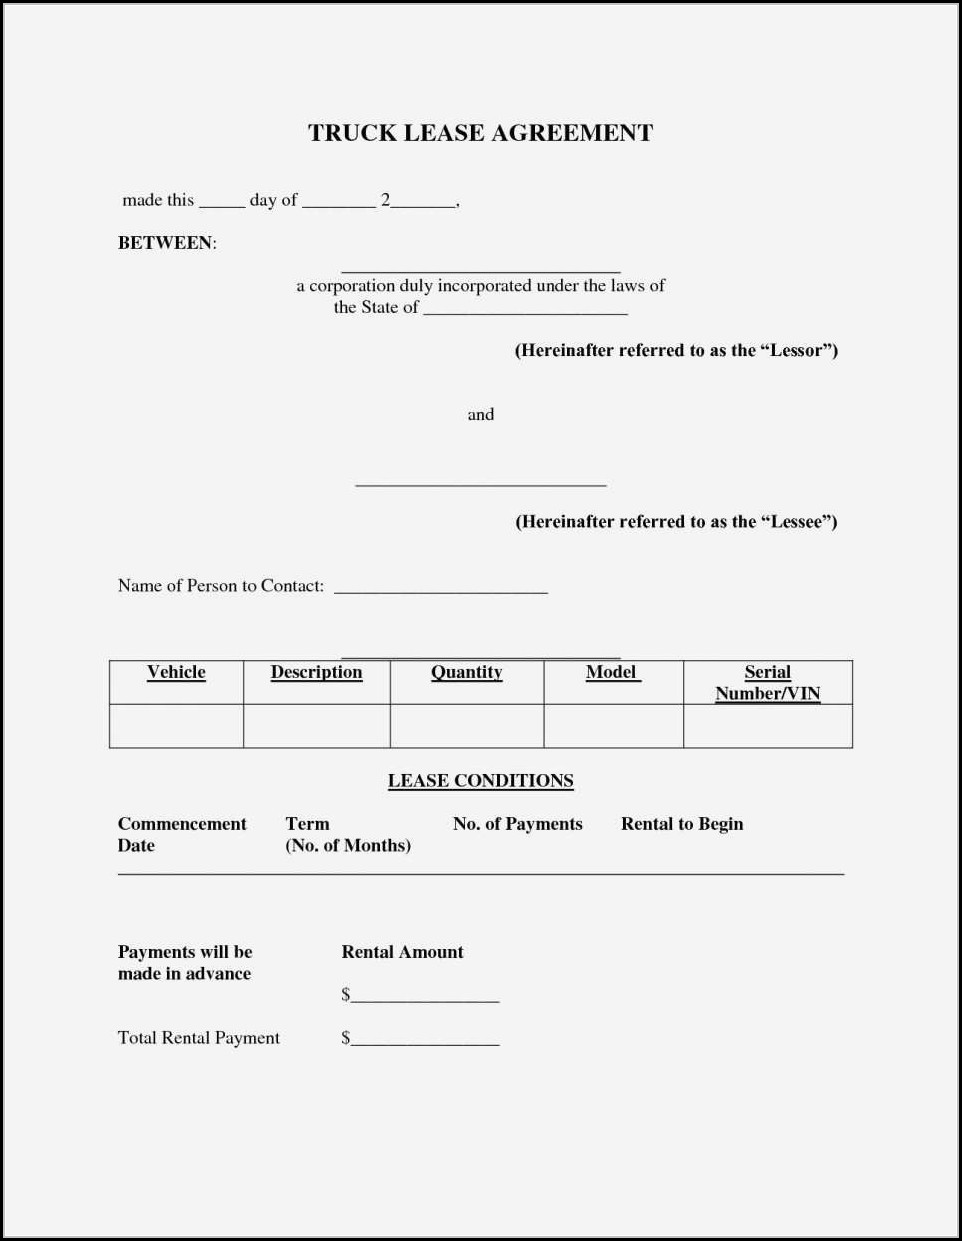 Truck Lease Agreement Template Free